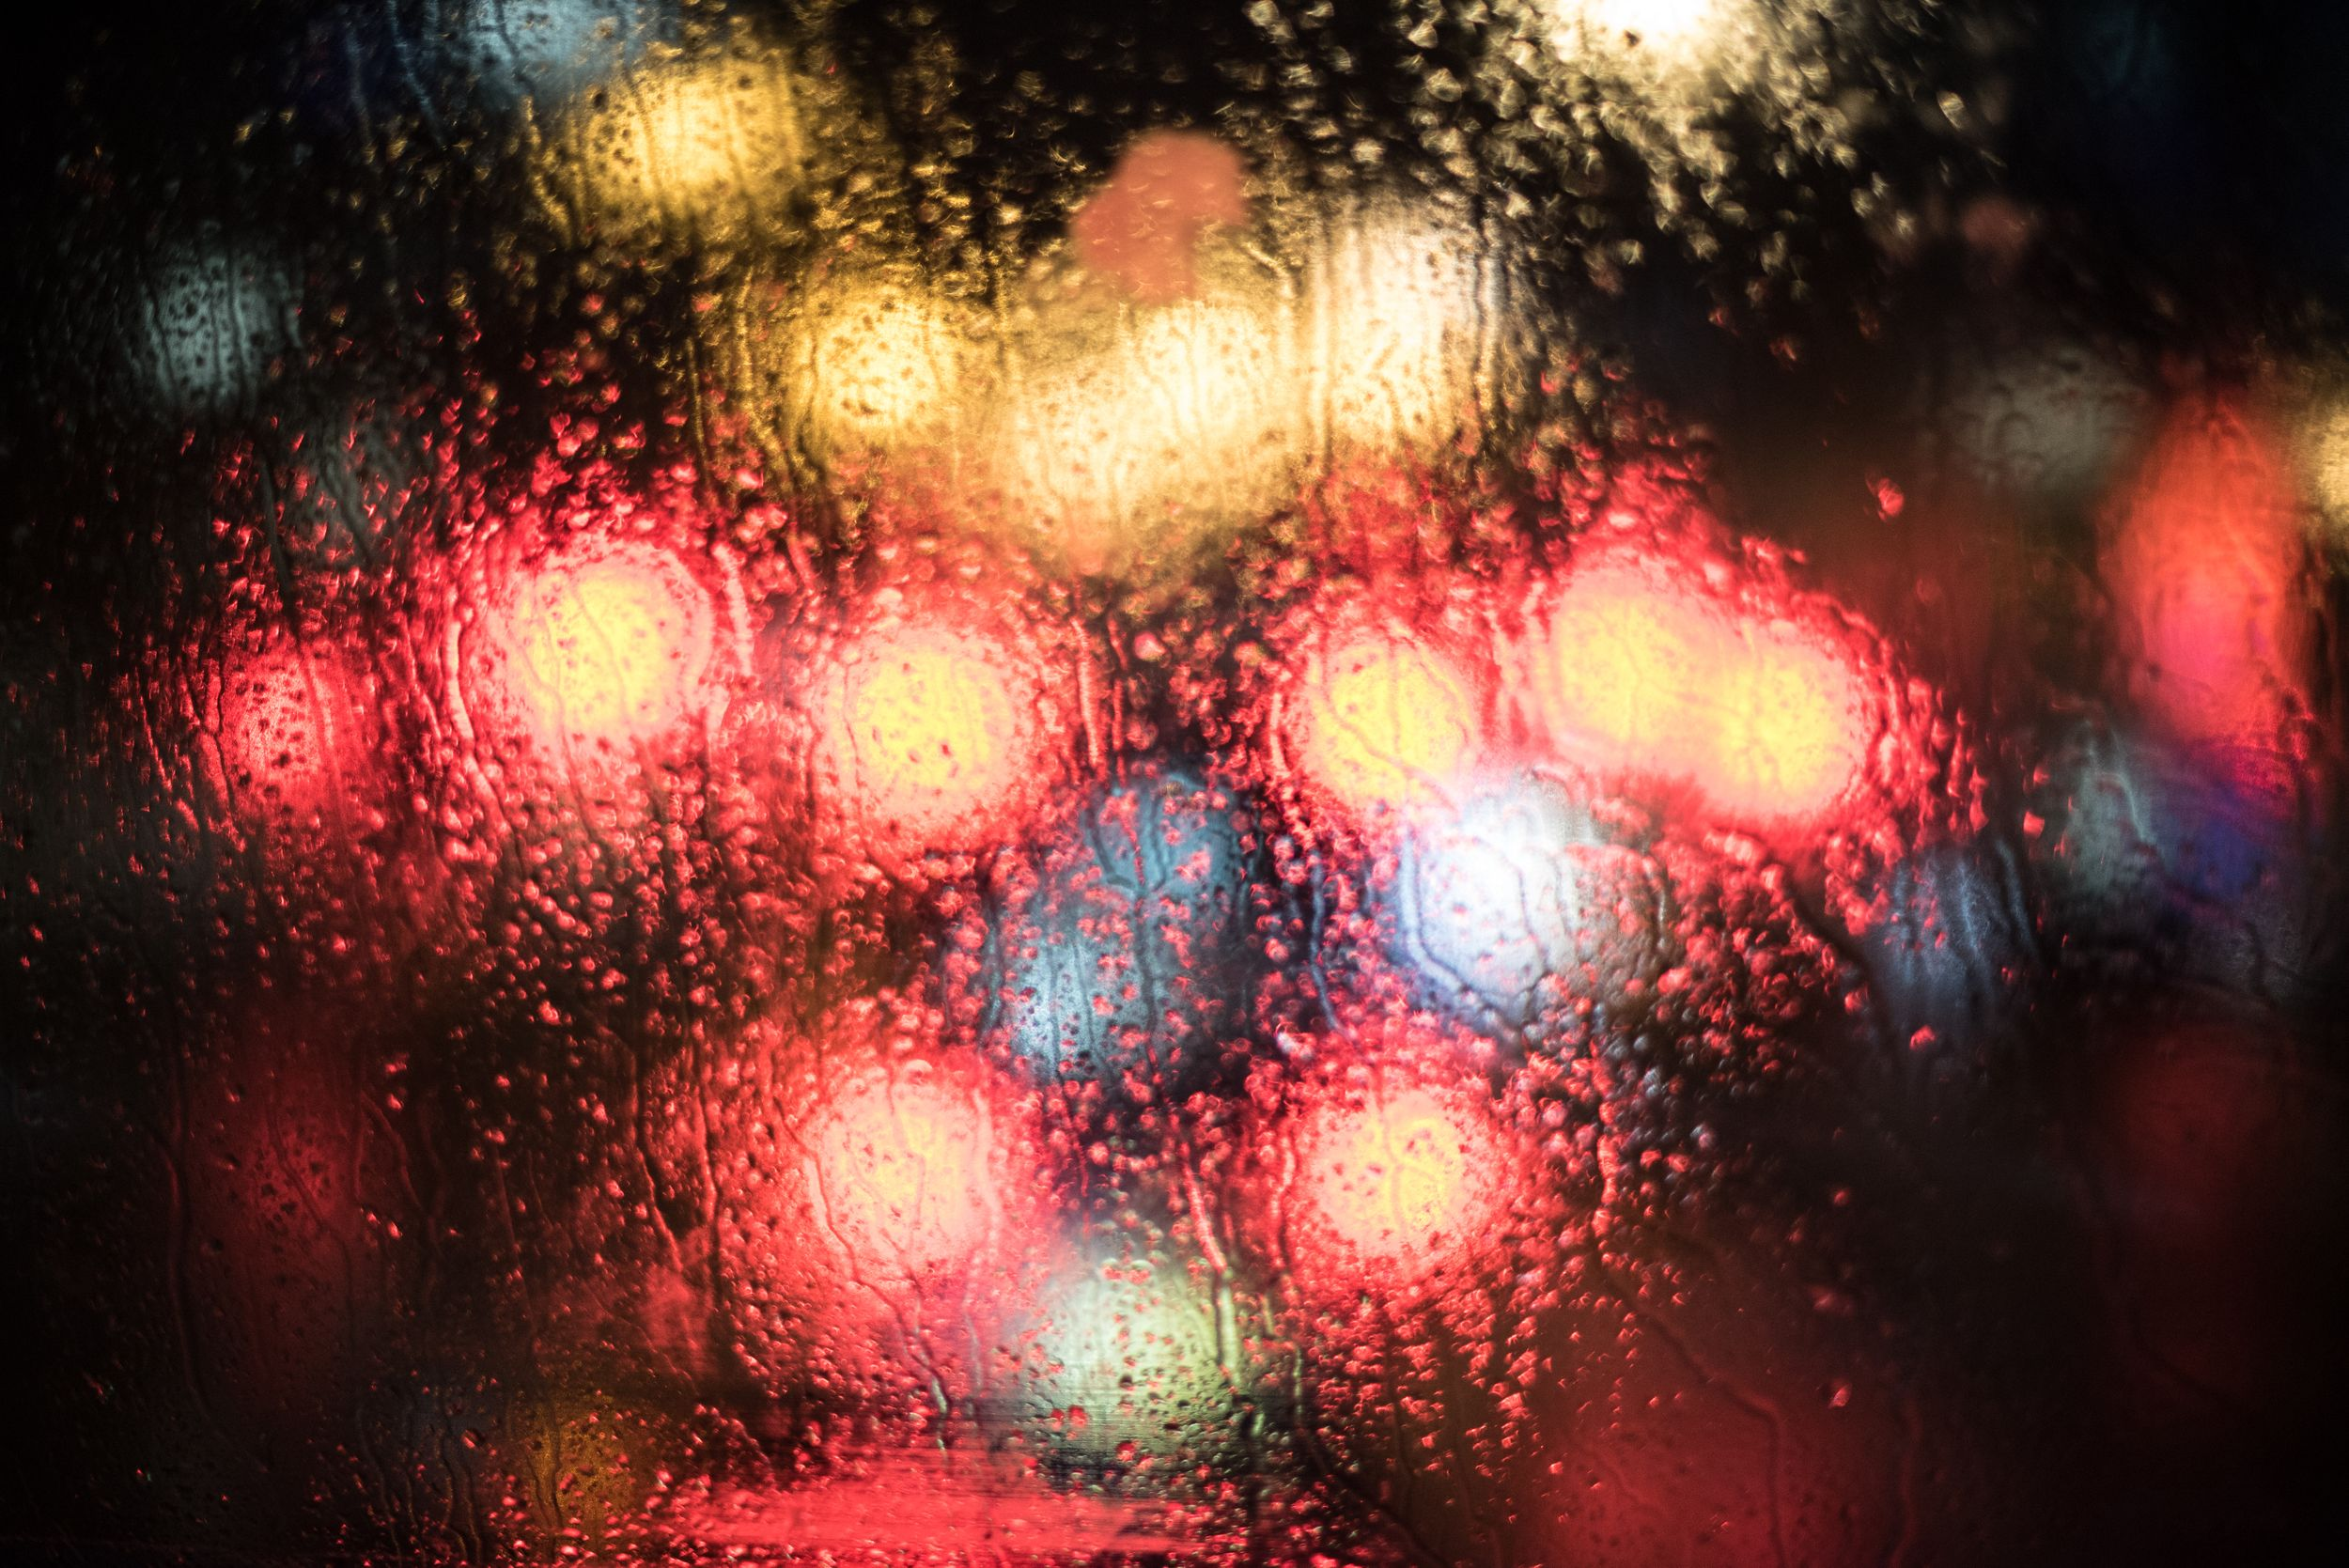 Colorful lights through a windshield on a rainy London evening